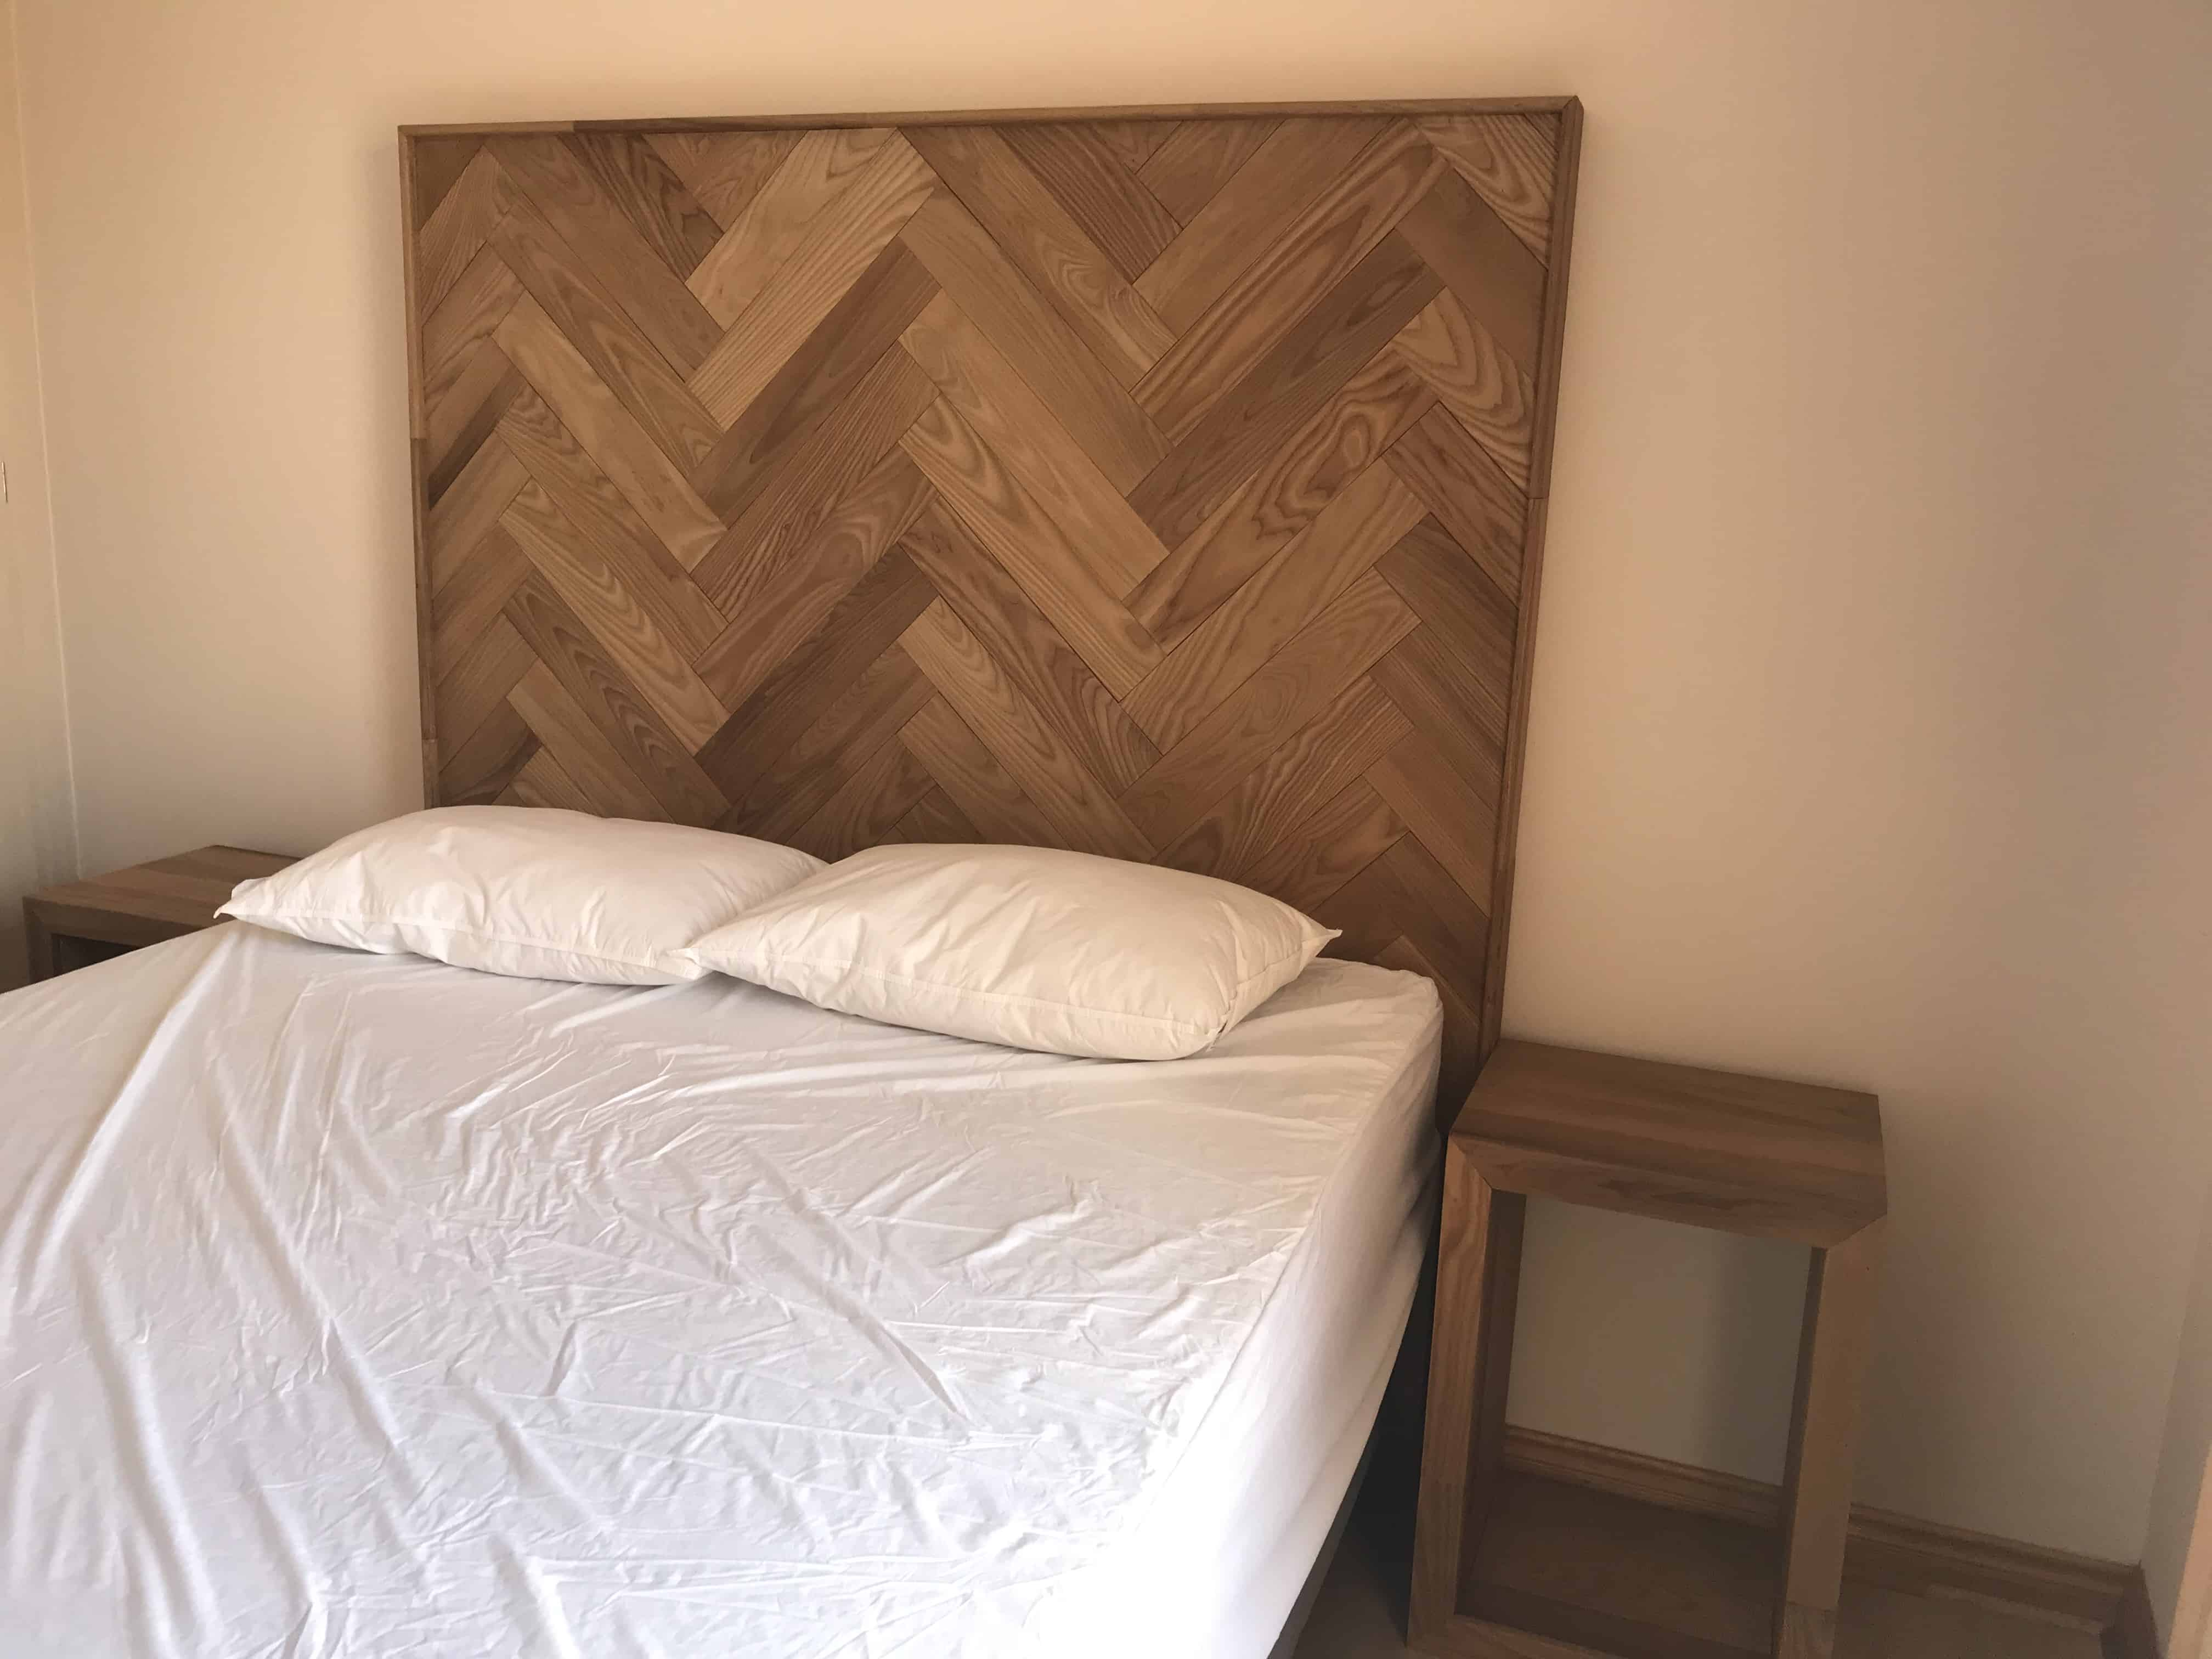 Thermal Ash Head Board And Side Table